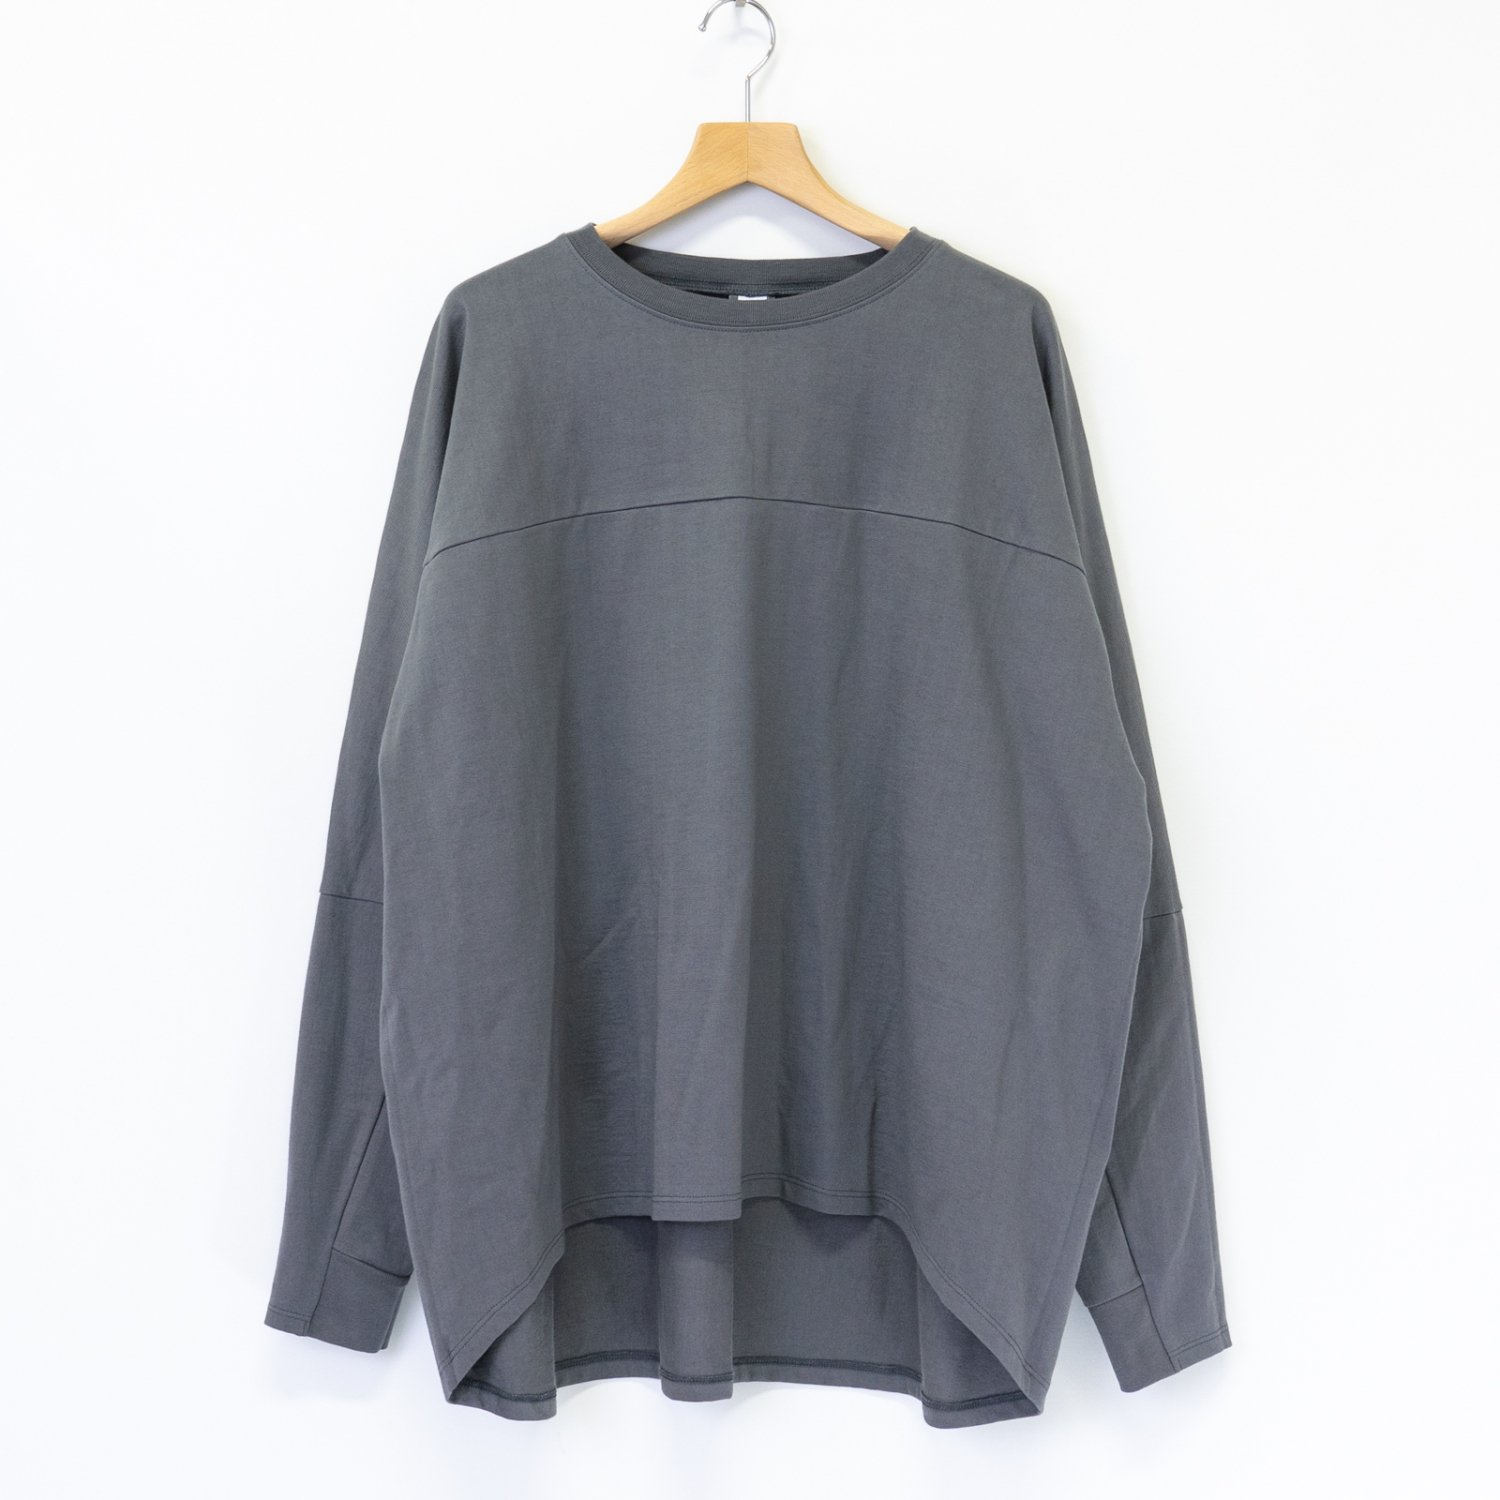 Graphpaper * PRE_ for Graphpaper Oversized FTB L/S Tee * Gray